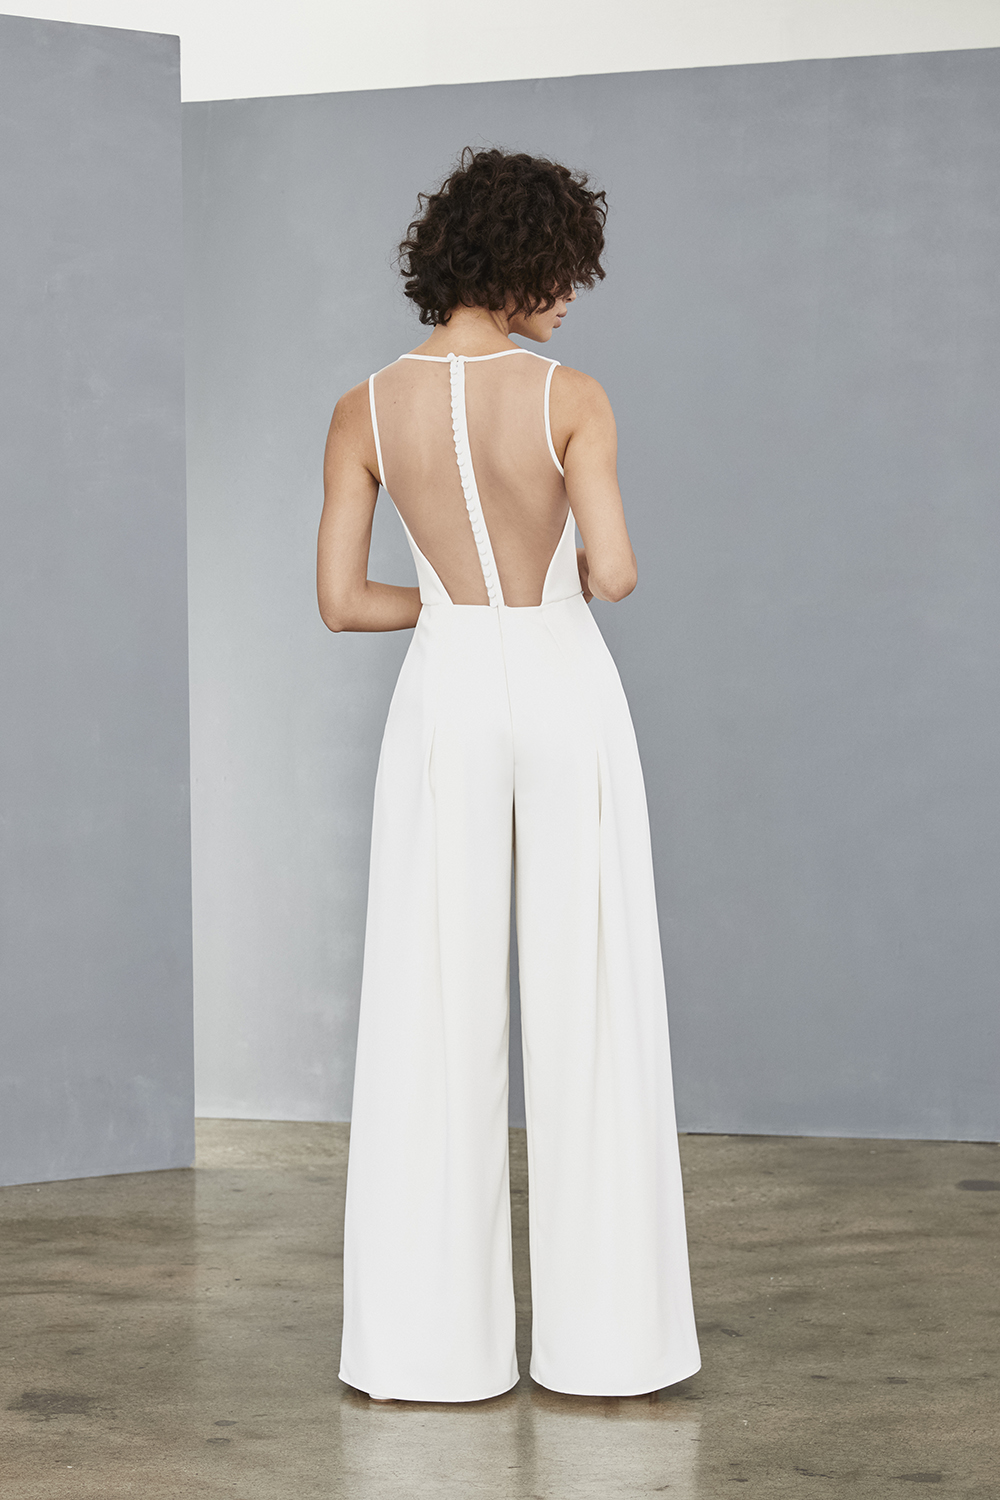 Illusion back of Amsale Little White Dresses style LW136 in white crepe